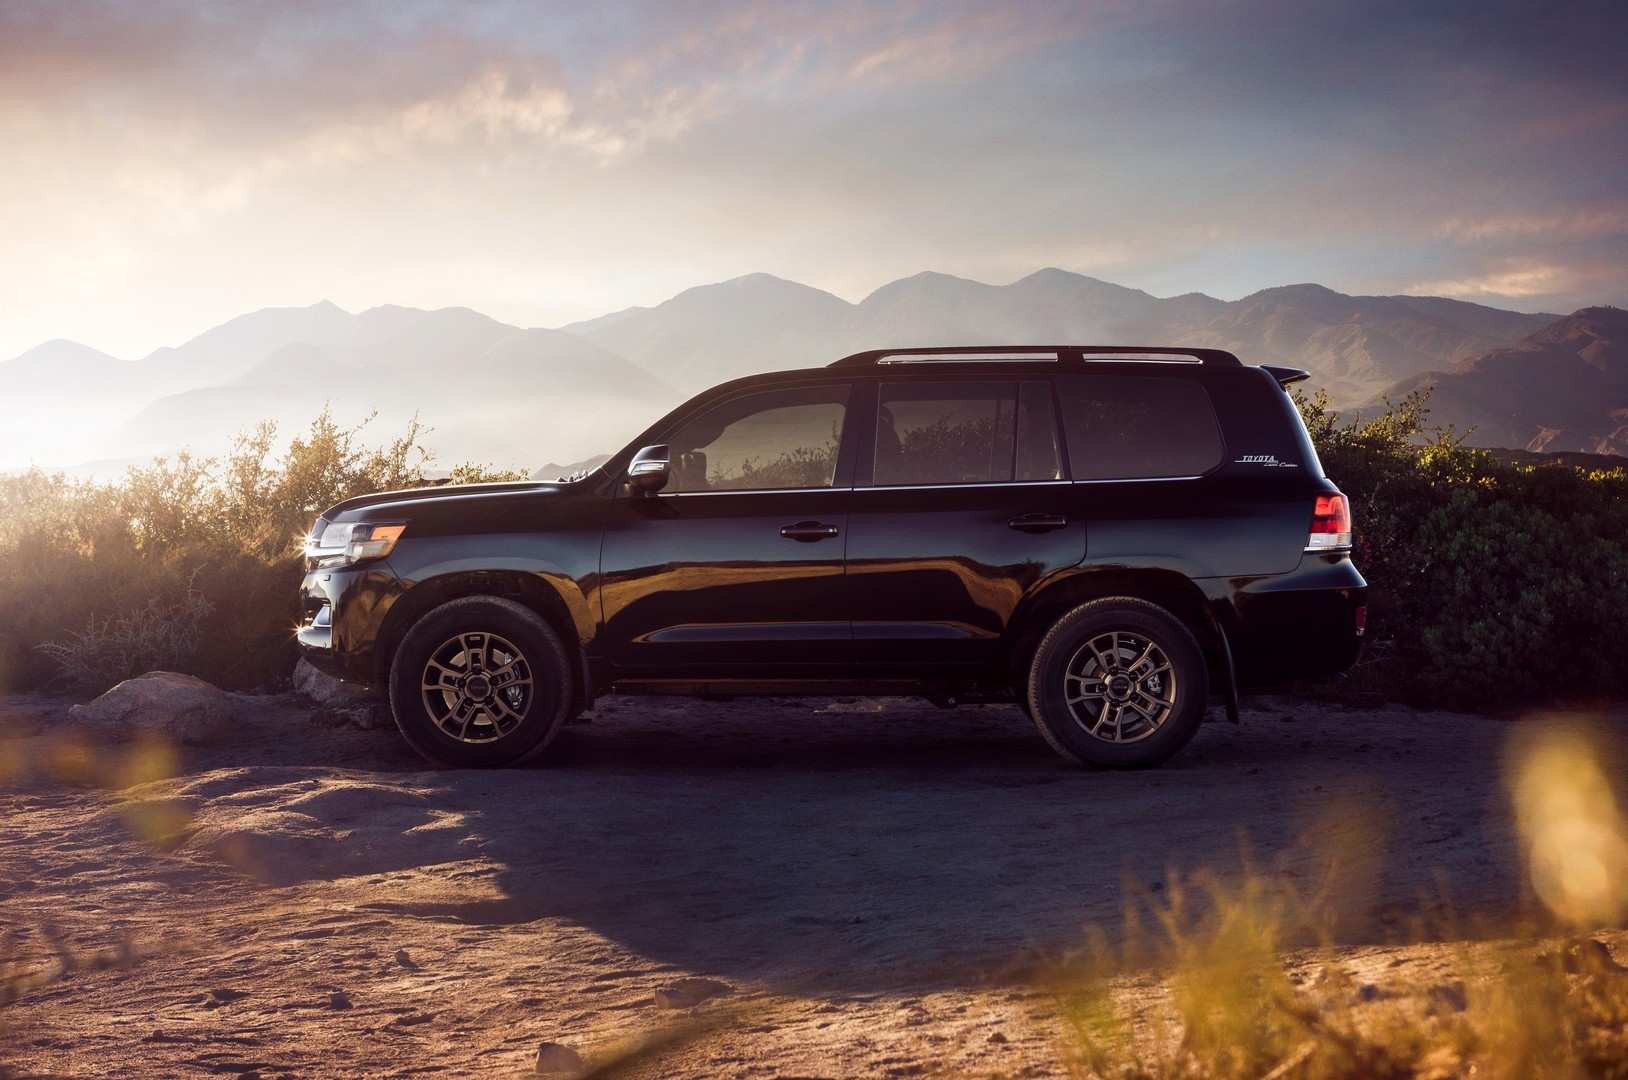 Select colors, packages and other vehicle options to get the msrp, book value and invoice price for the 2020 4runner venture 4dr 4x4. 2021 Toyota Land Cruiser 200 Pricing Announced, Heritage